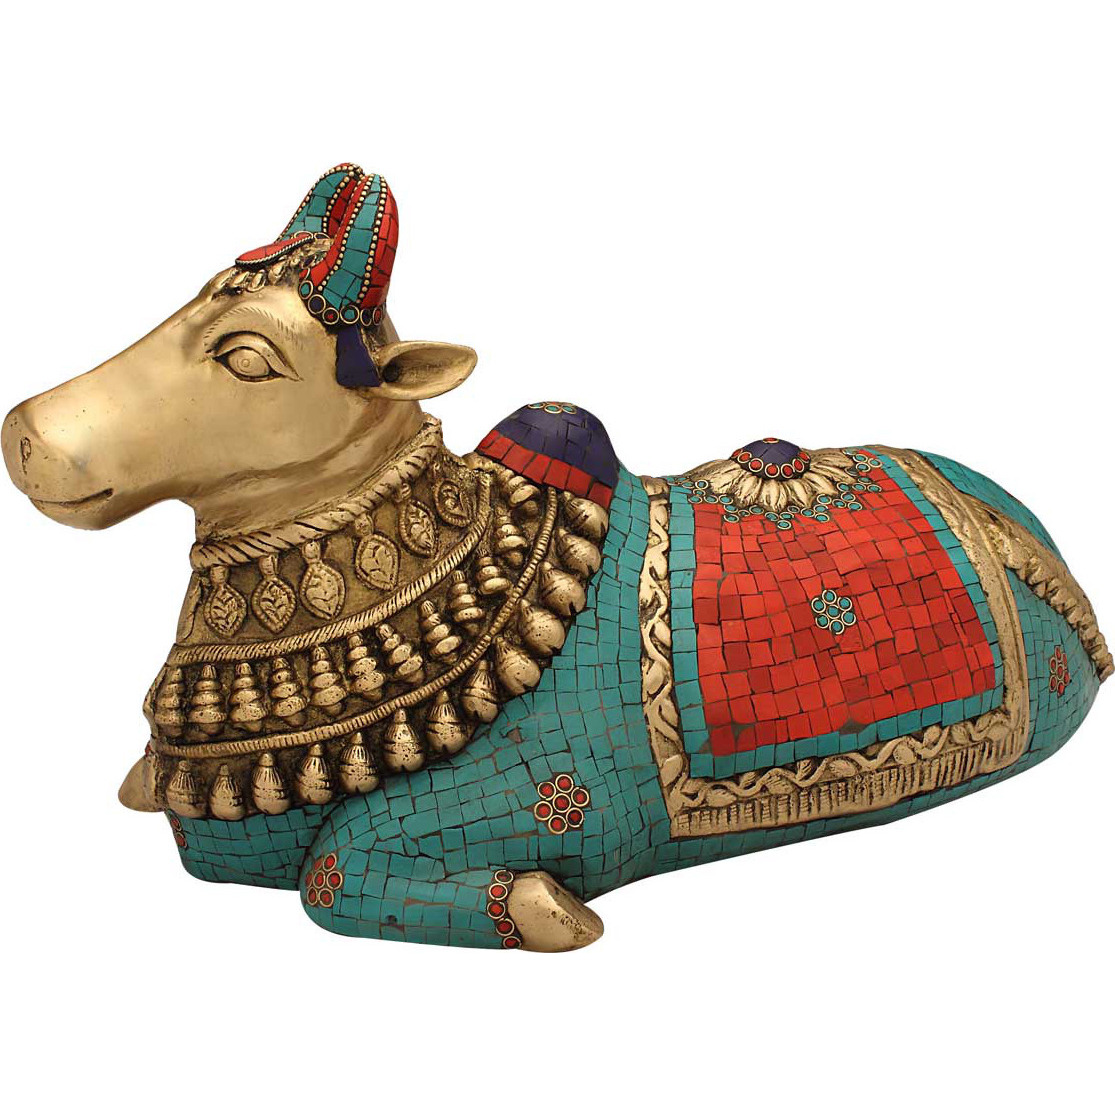 Brass hindu holy cow sacred nandi figure antique religious pooja statue 4